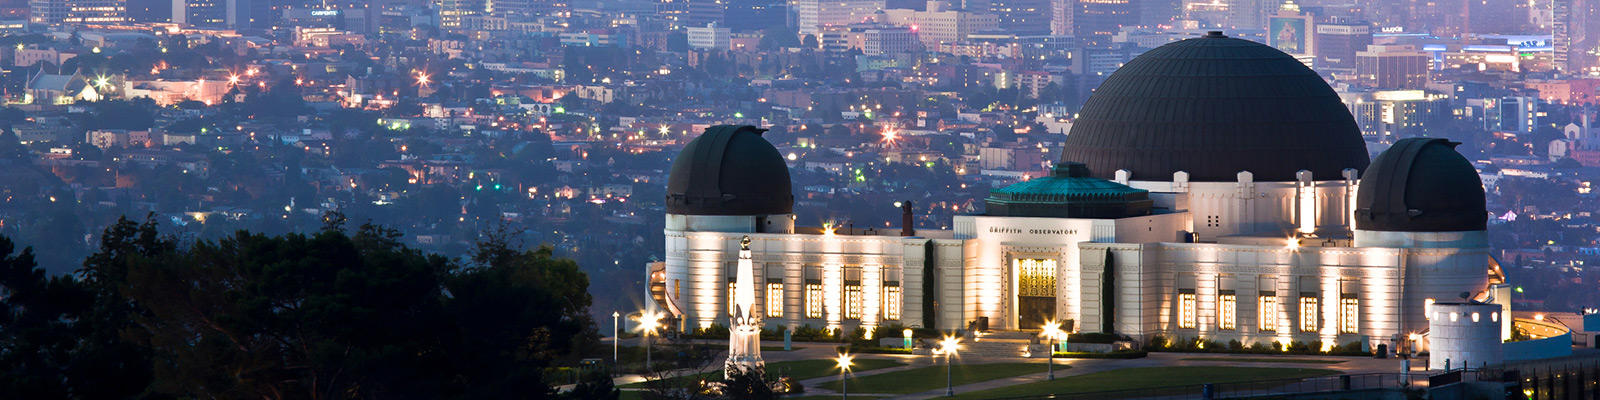 All The Ways To Fall In Love With La